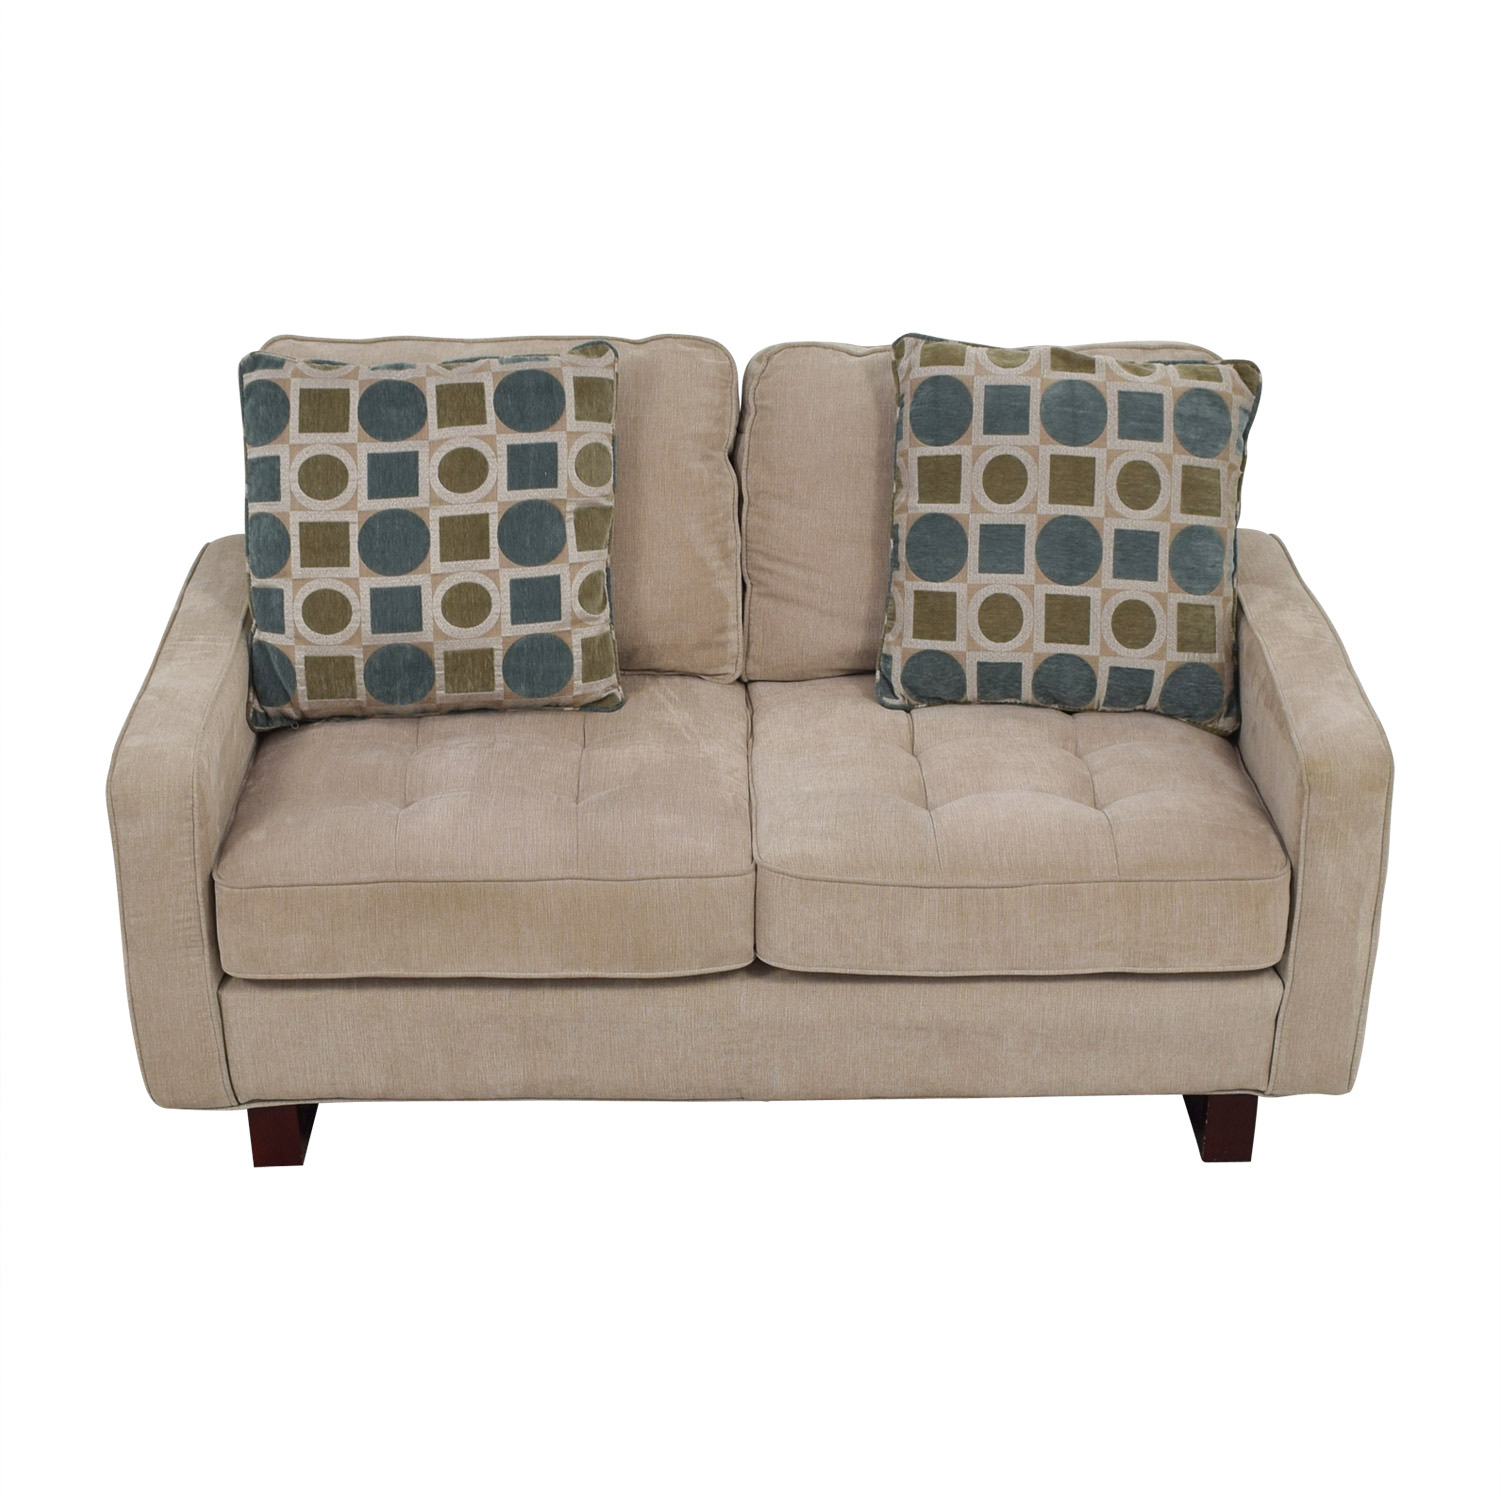 Beige Loveseat with Shapes Print Pillows coupon